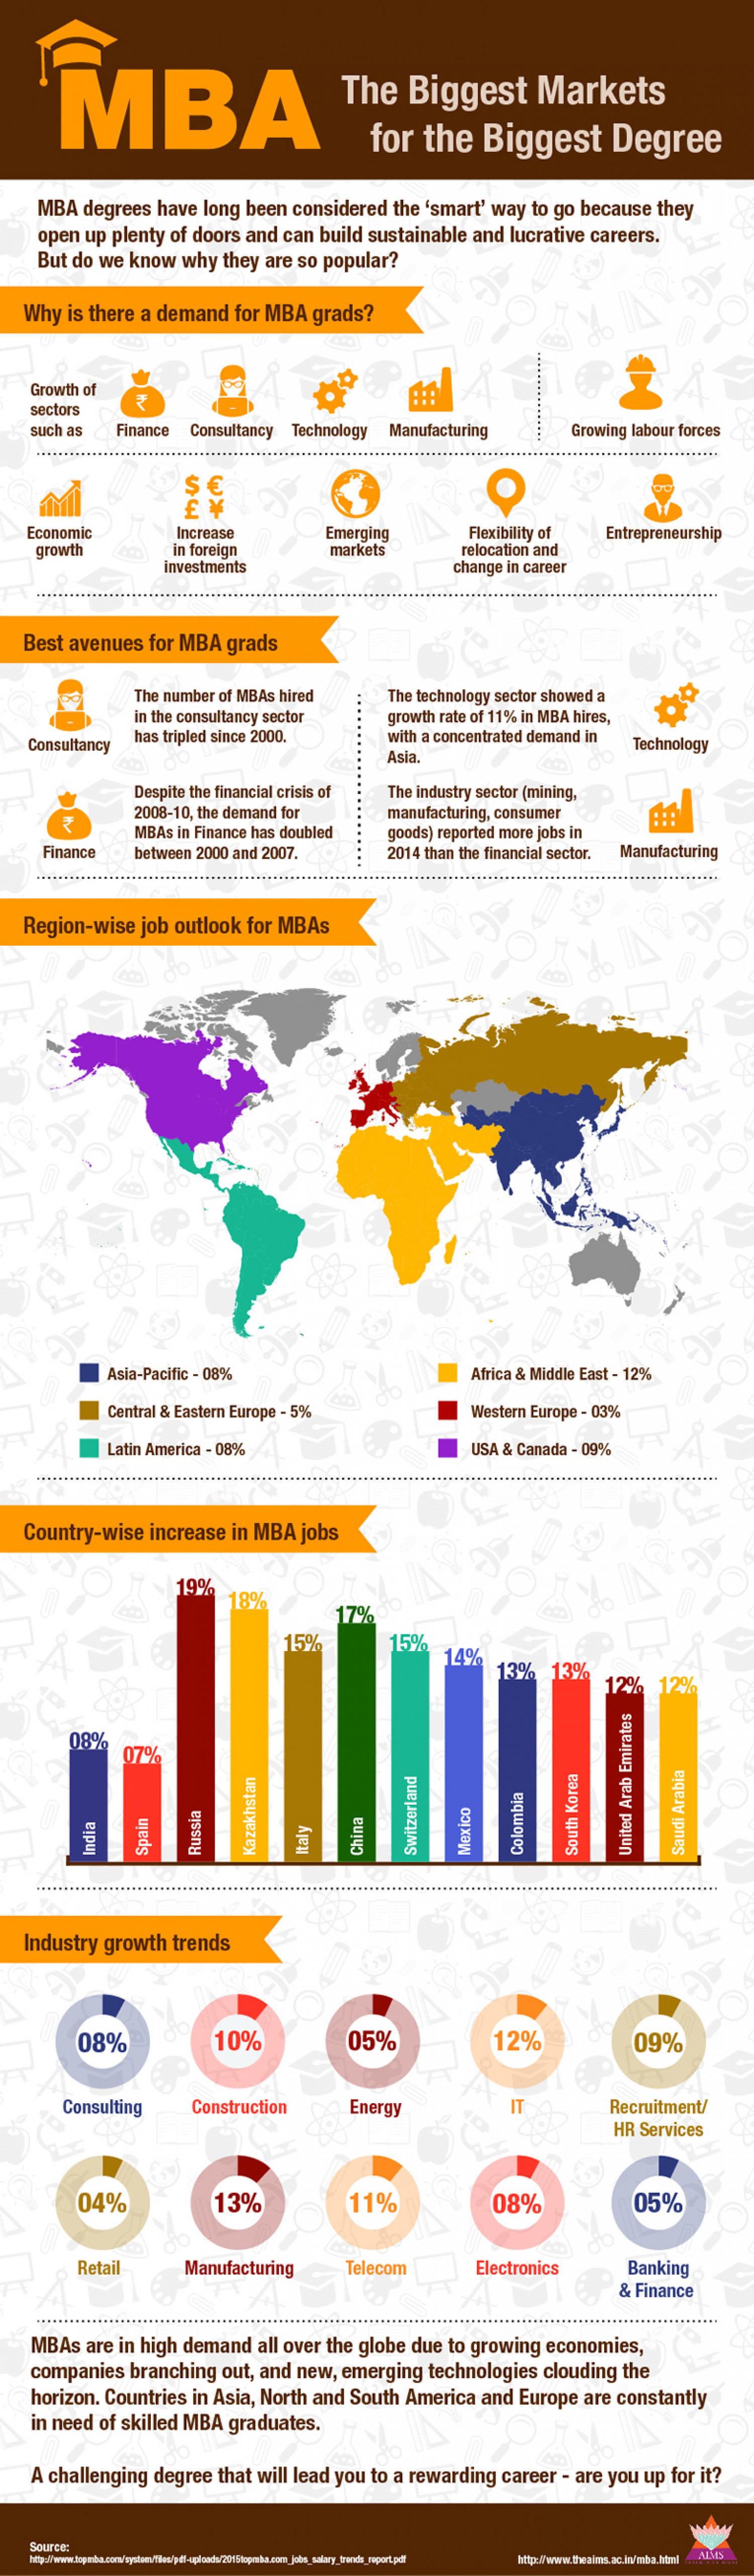 MBA the biggest market for the biggest MBA degree Infographic